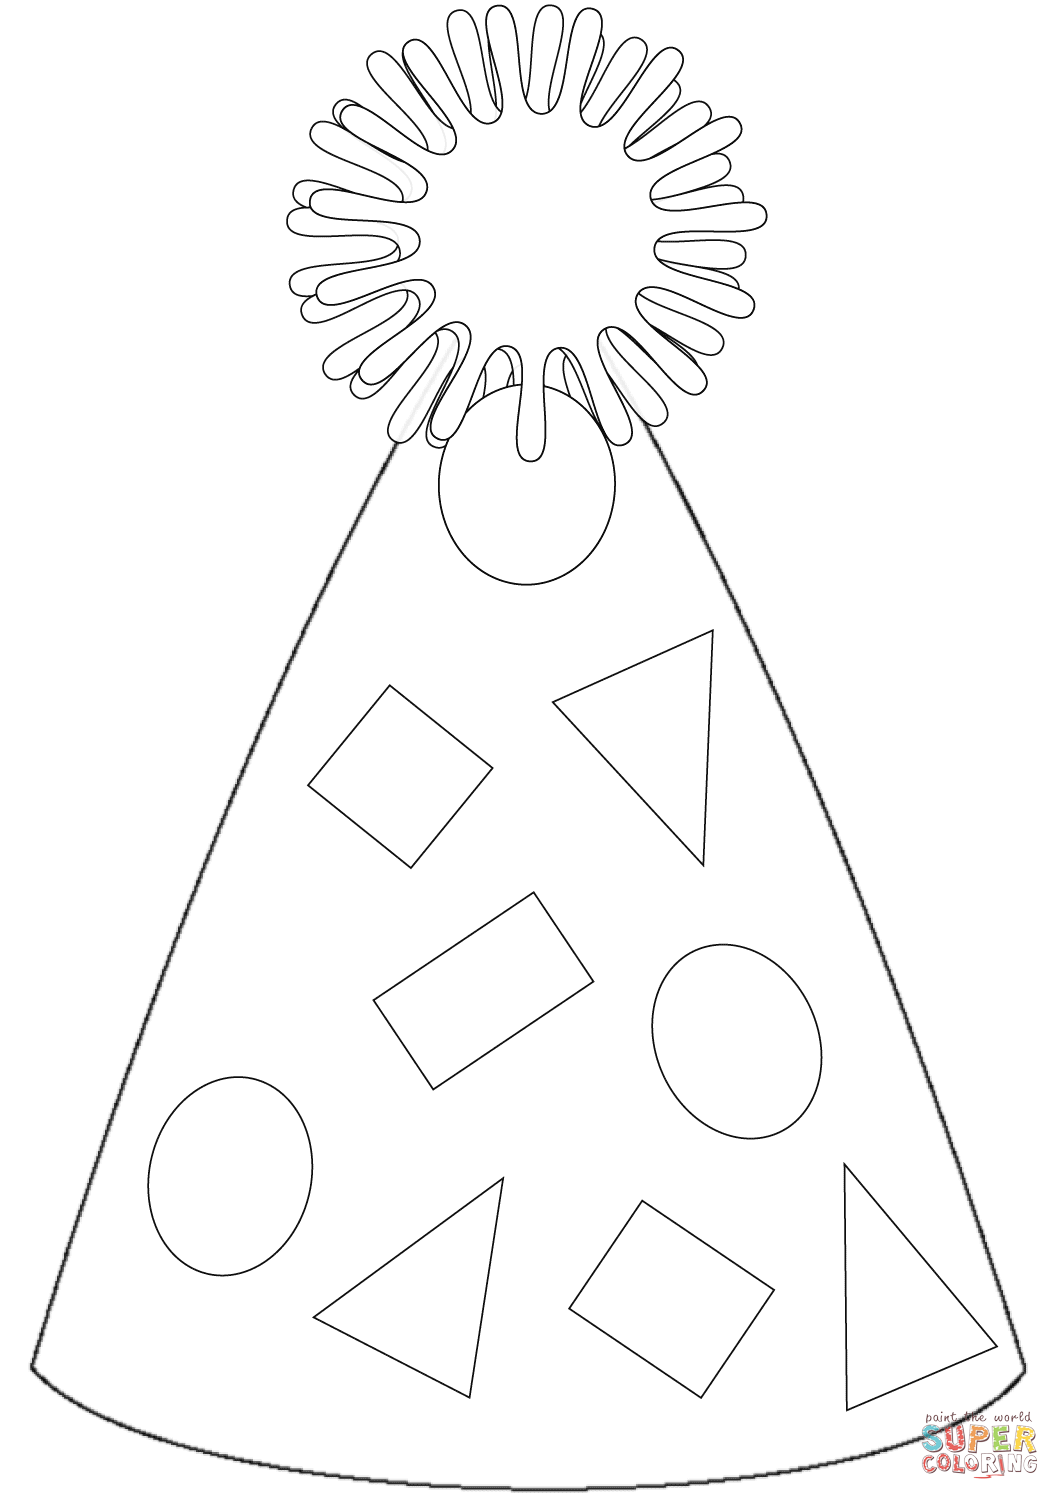 Party Hat Coloring Page